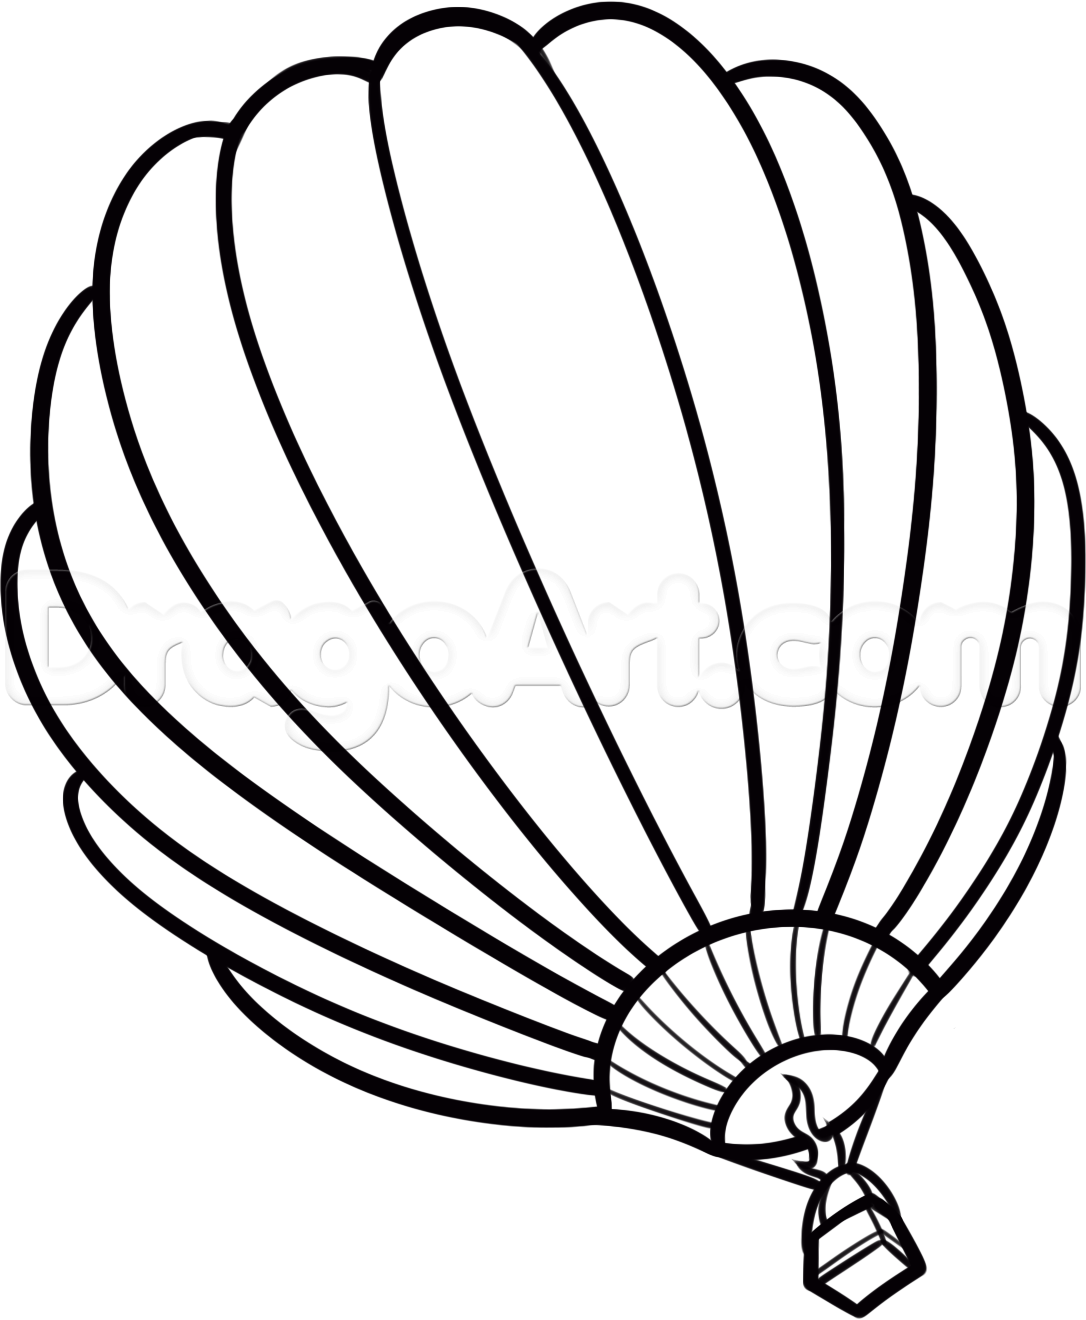 1086x1320 How To Draw A Hot Air Balloon, Step